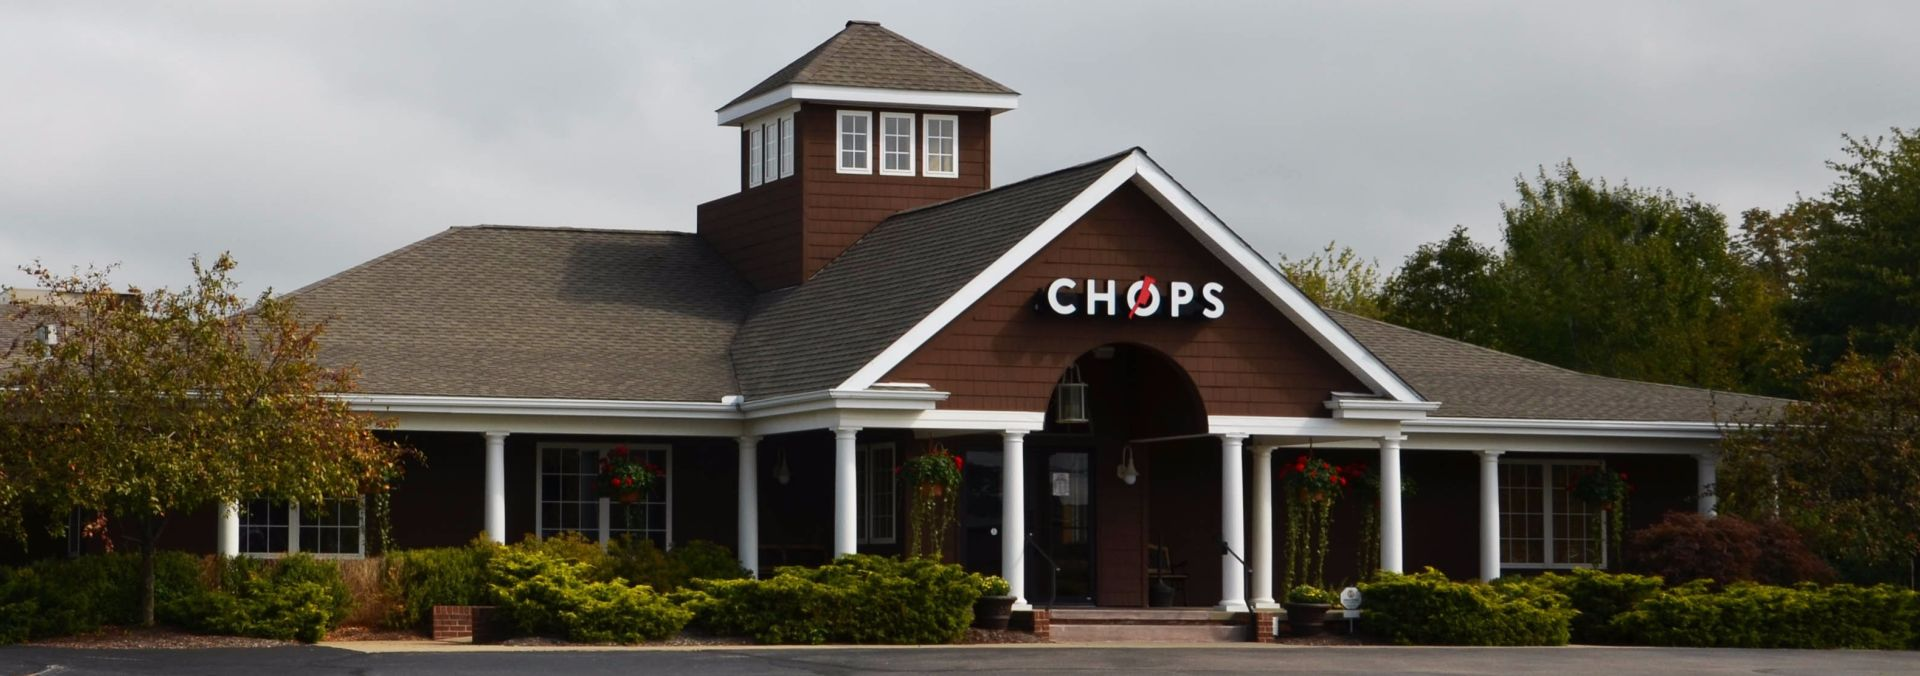 Chops – Successful Restaurant Business for Sale – *REDUCED!*